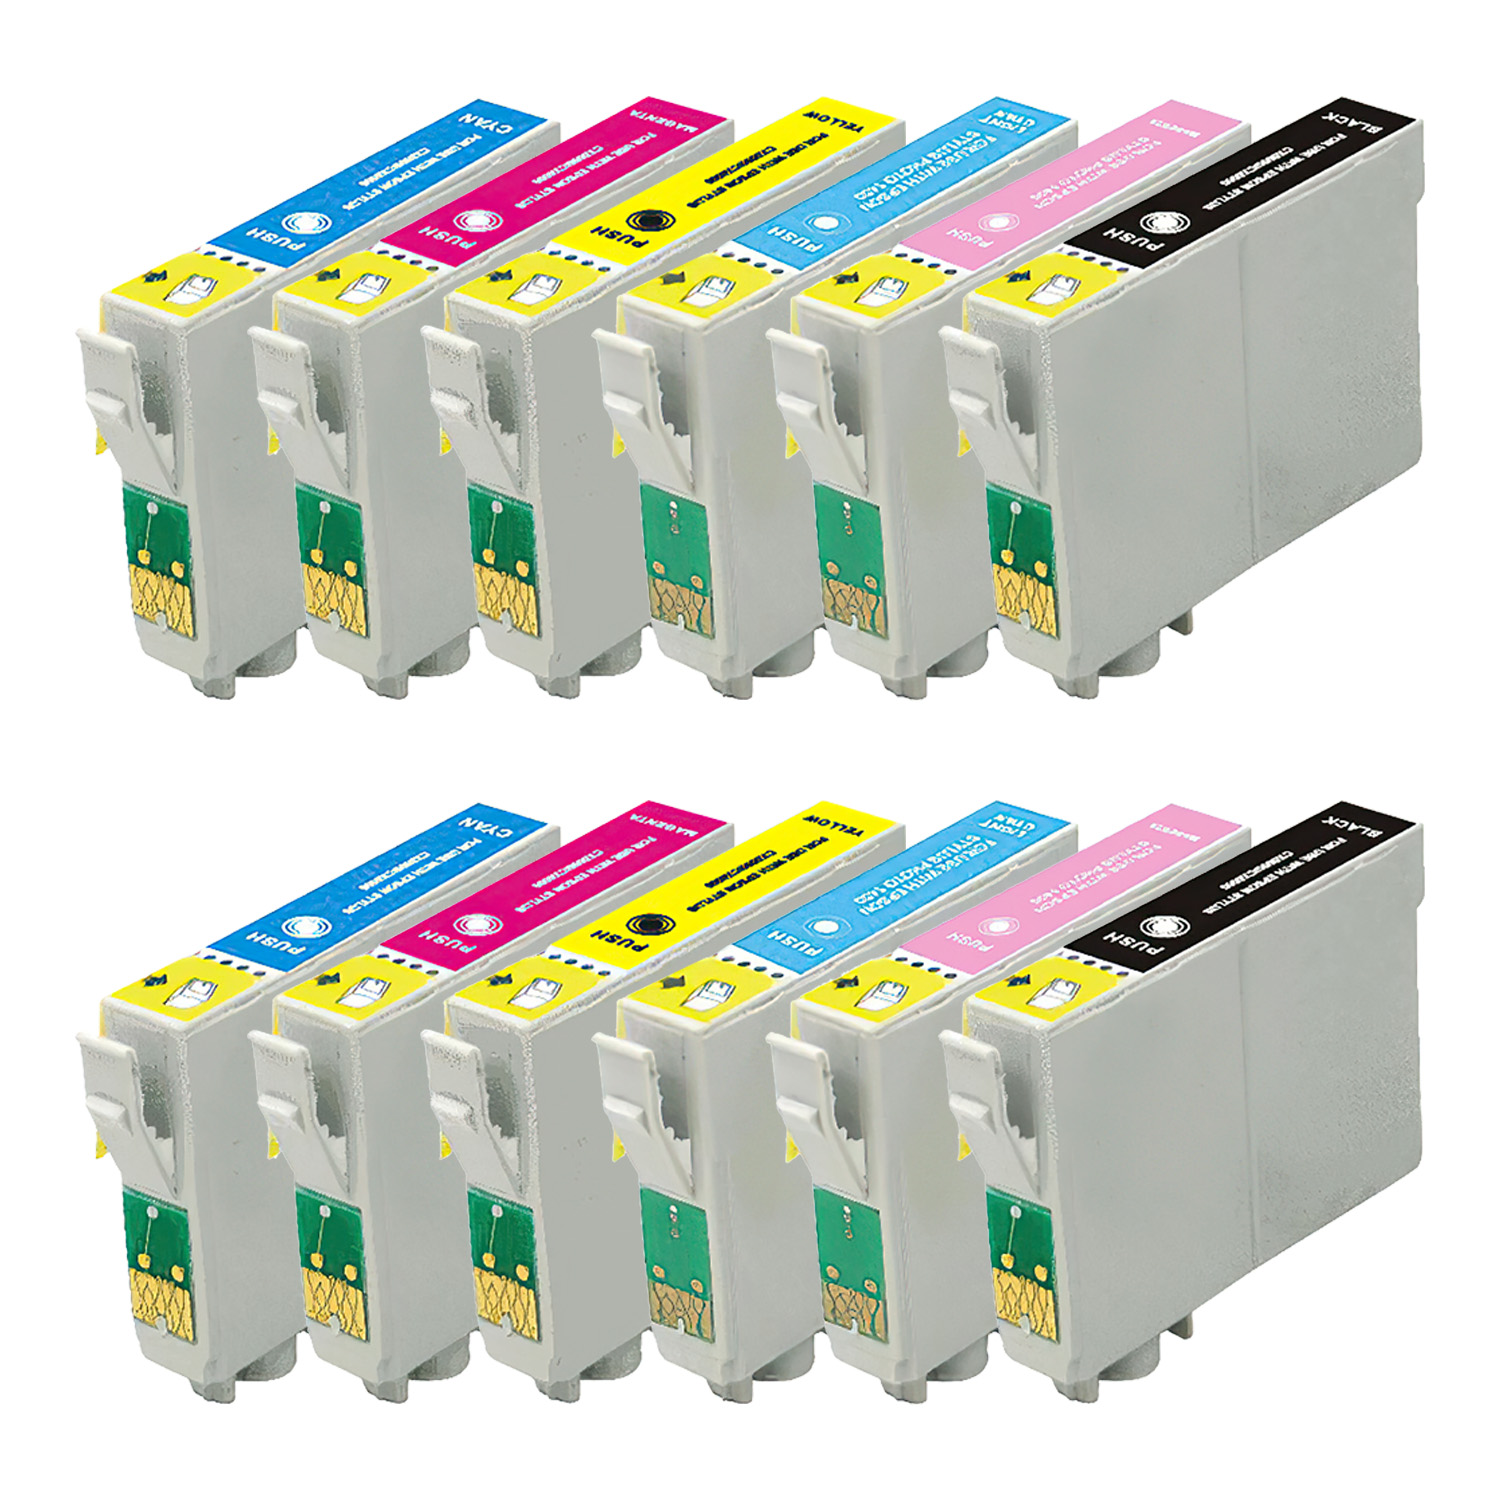 Remanufactured Epson 79 Inkjet Pack - 12 Cartridges